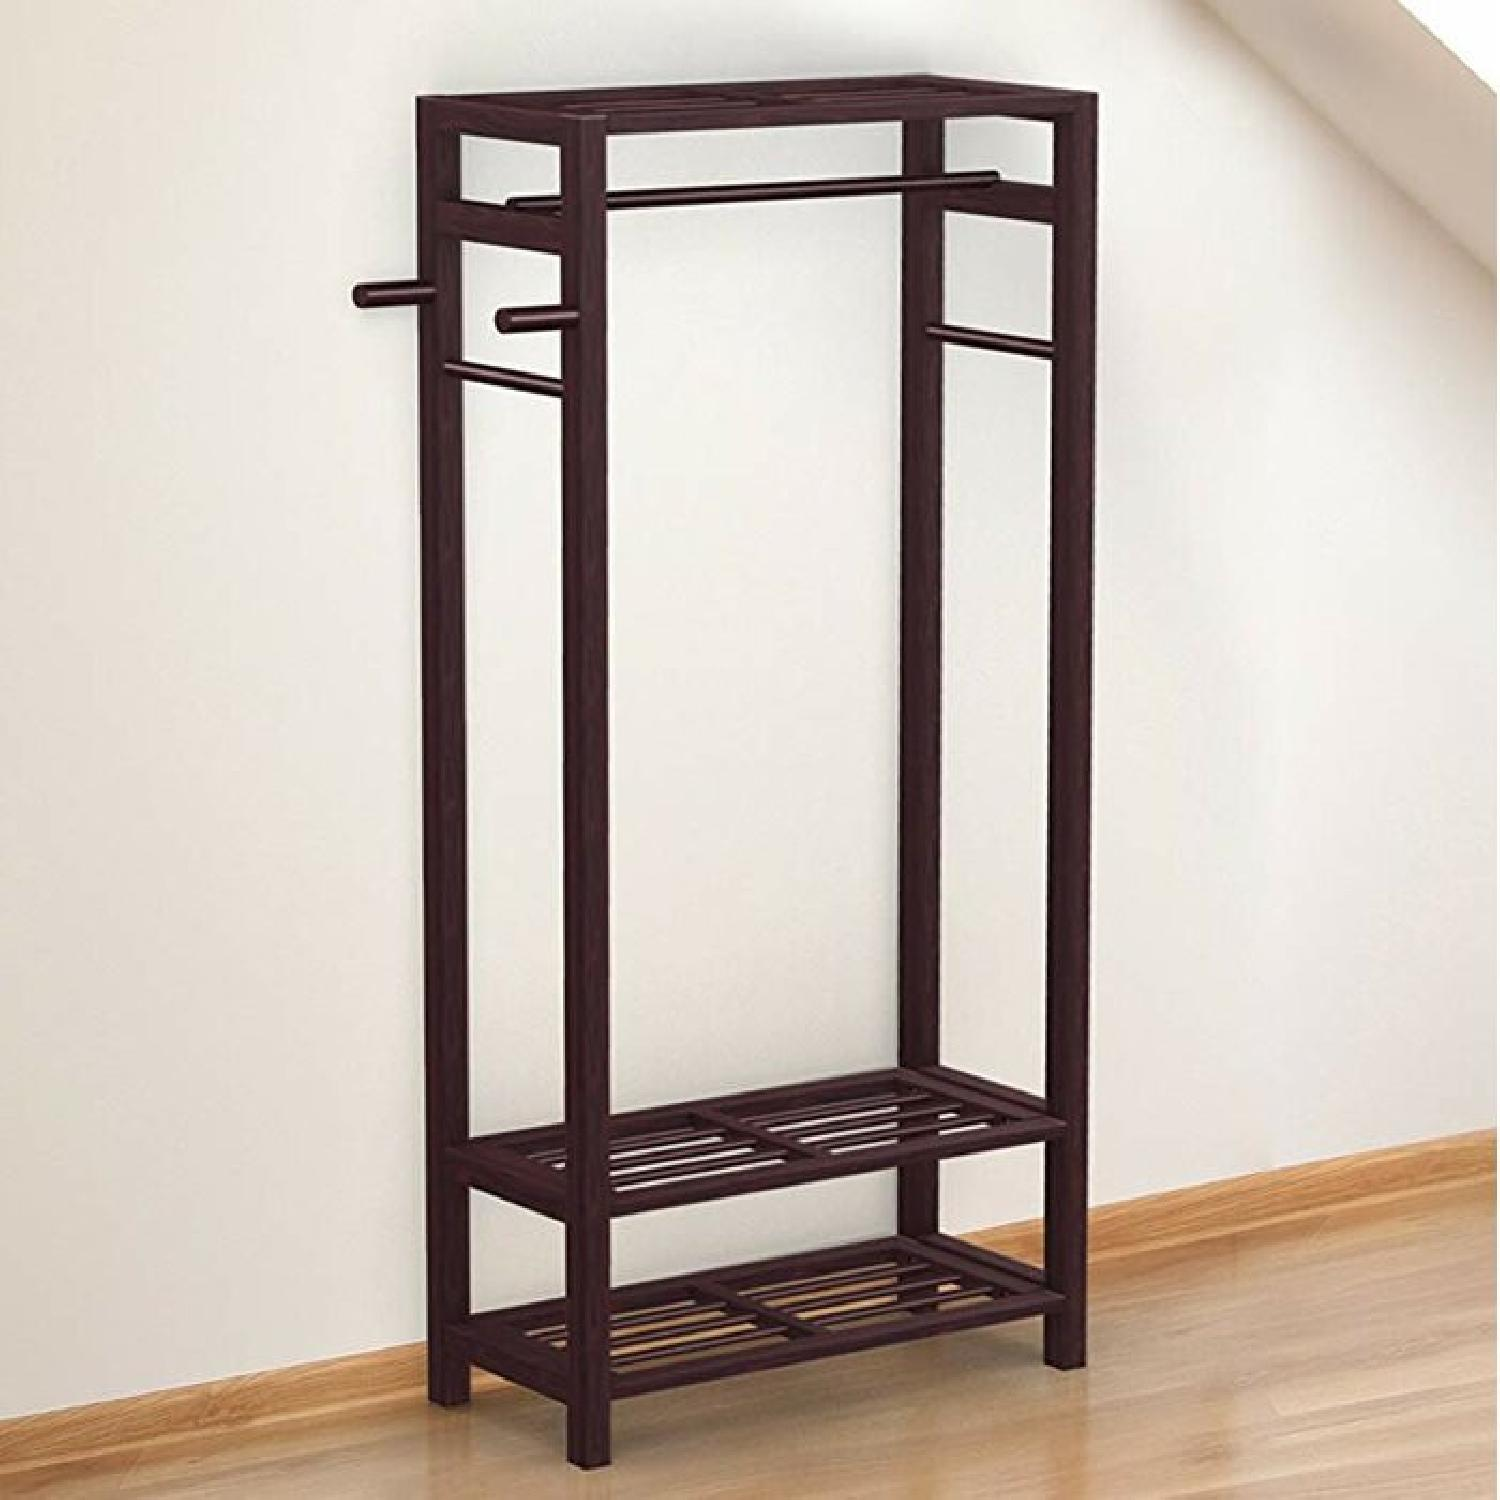 Wayfair Free Standing Coat Rack - image-5